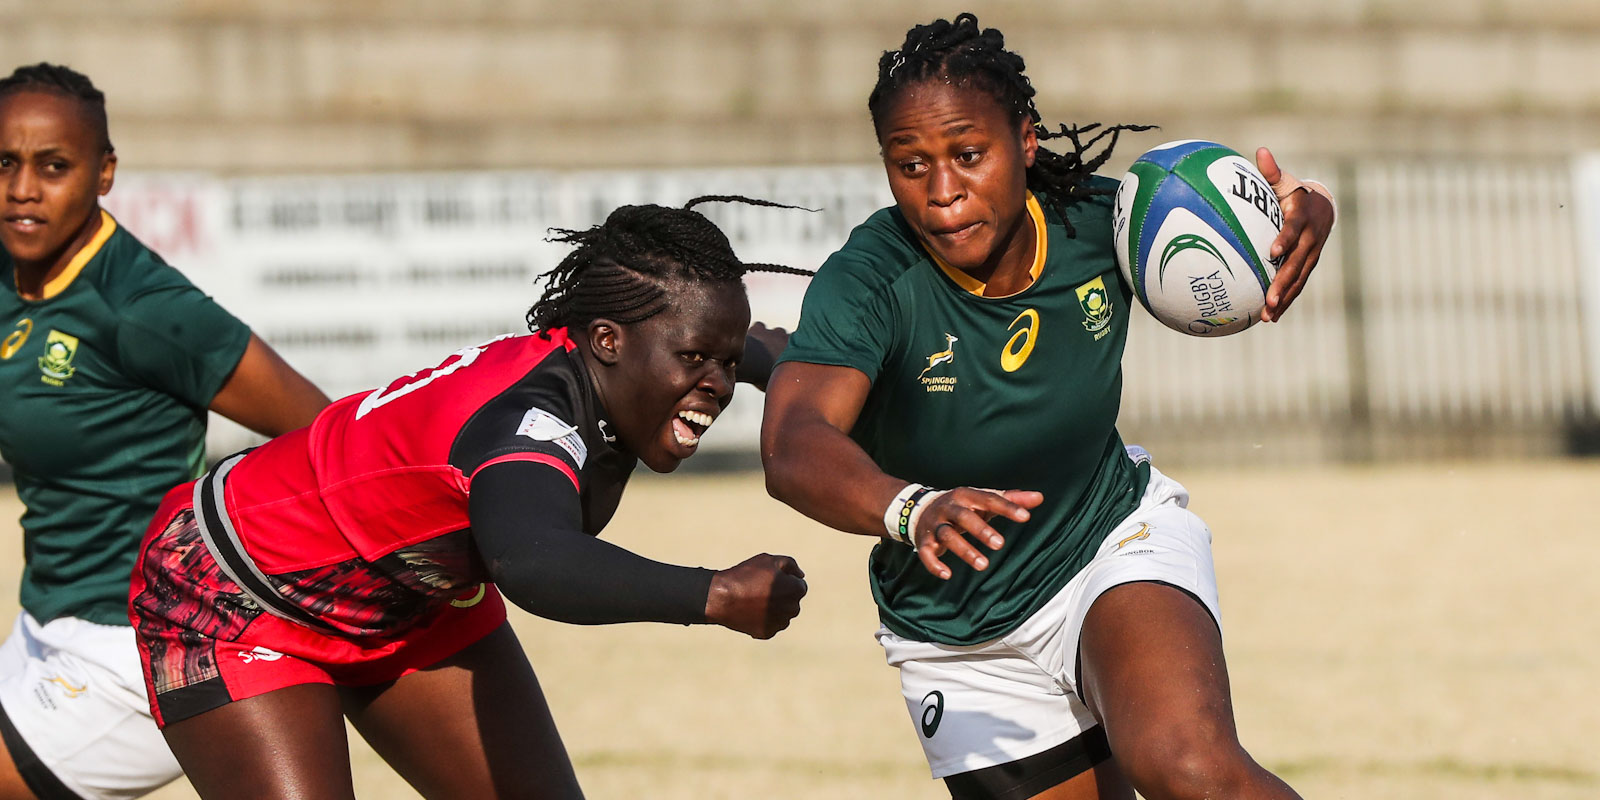 Mpupha in action in the RWC Qualifiers in 2019.